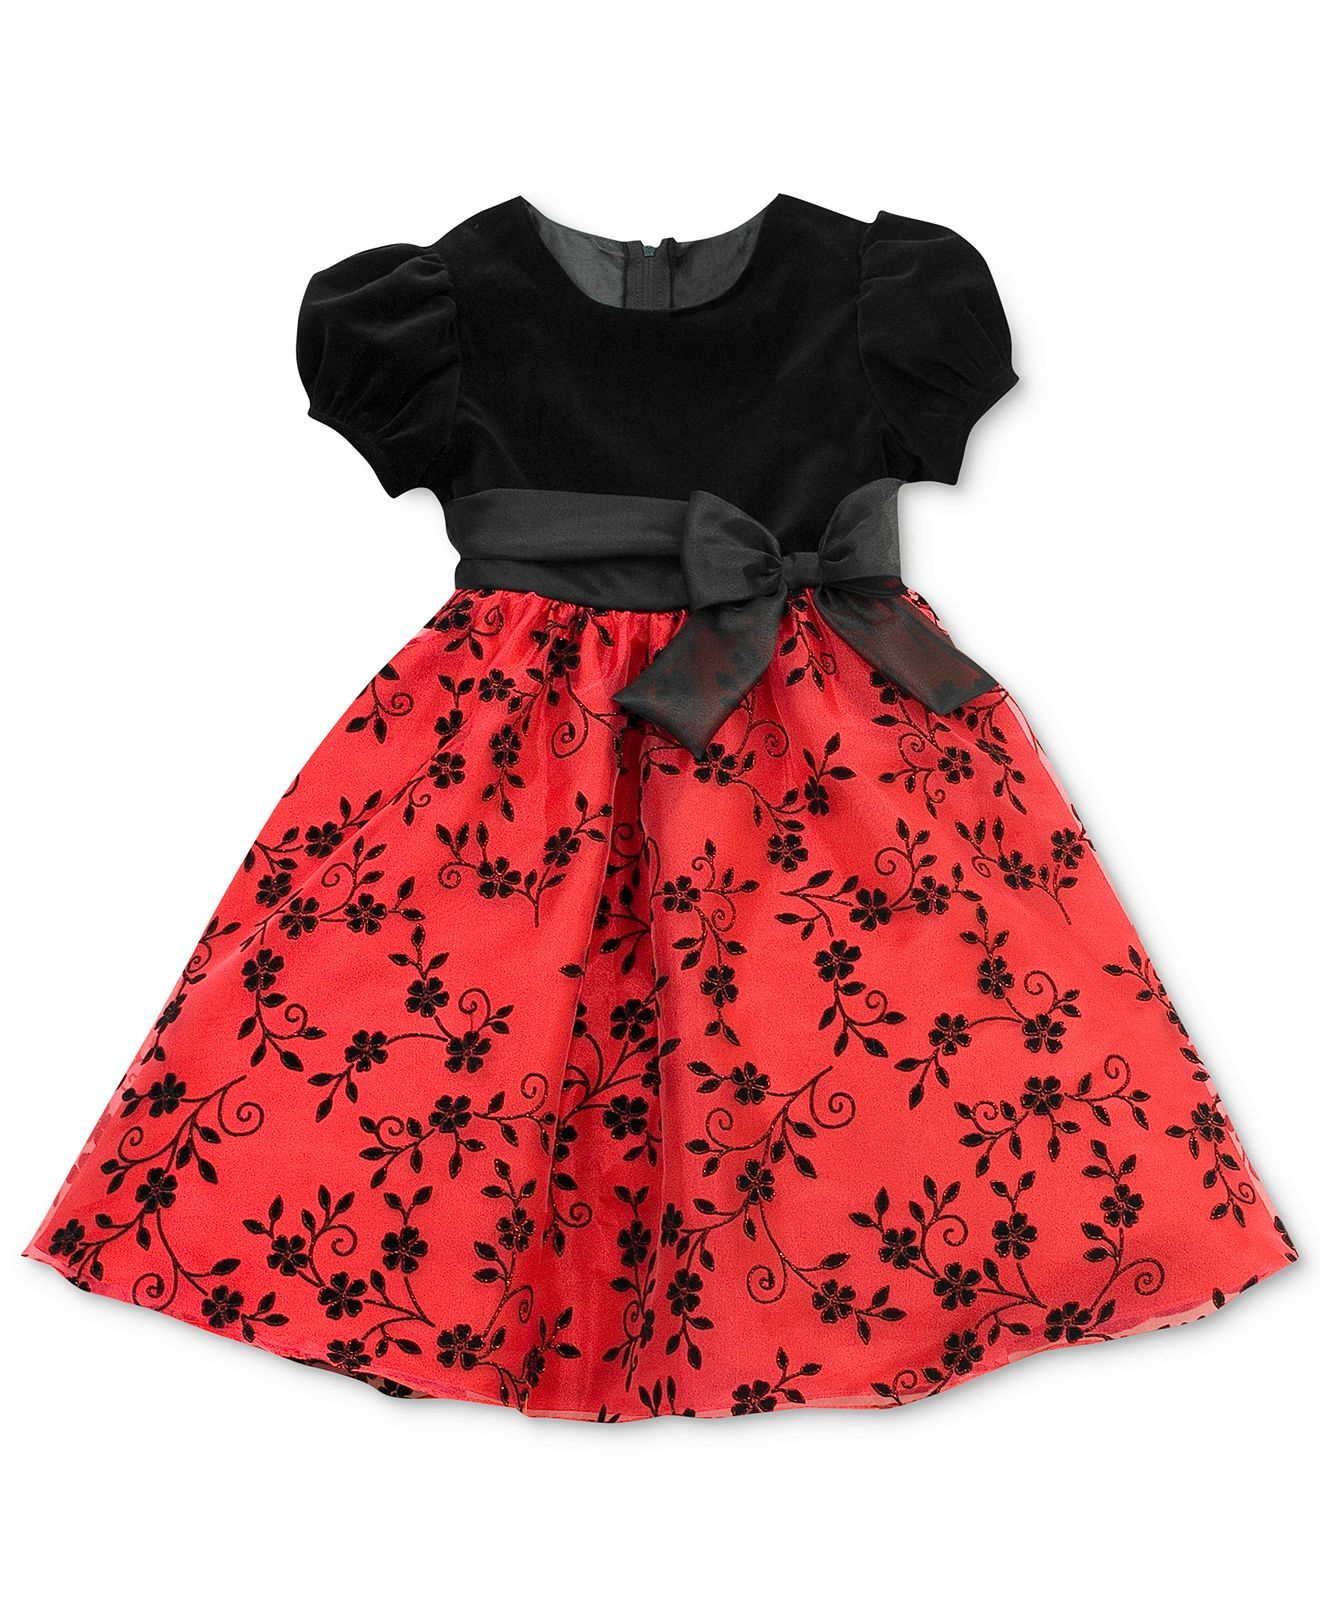 Rare Editions Girls Dress Little Girls Velvet Flocked Holiday Dress